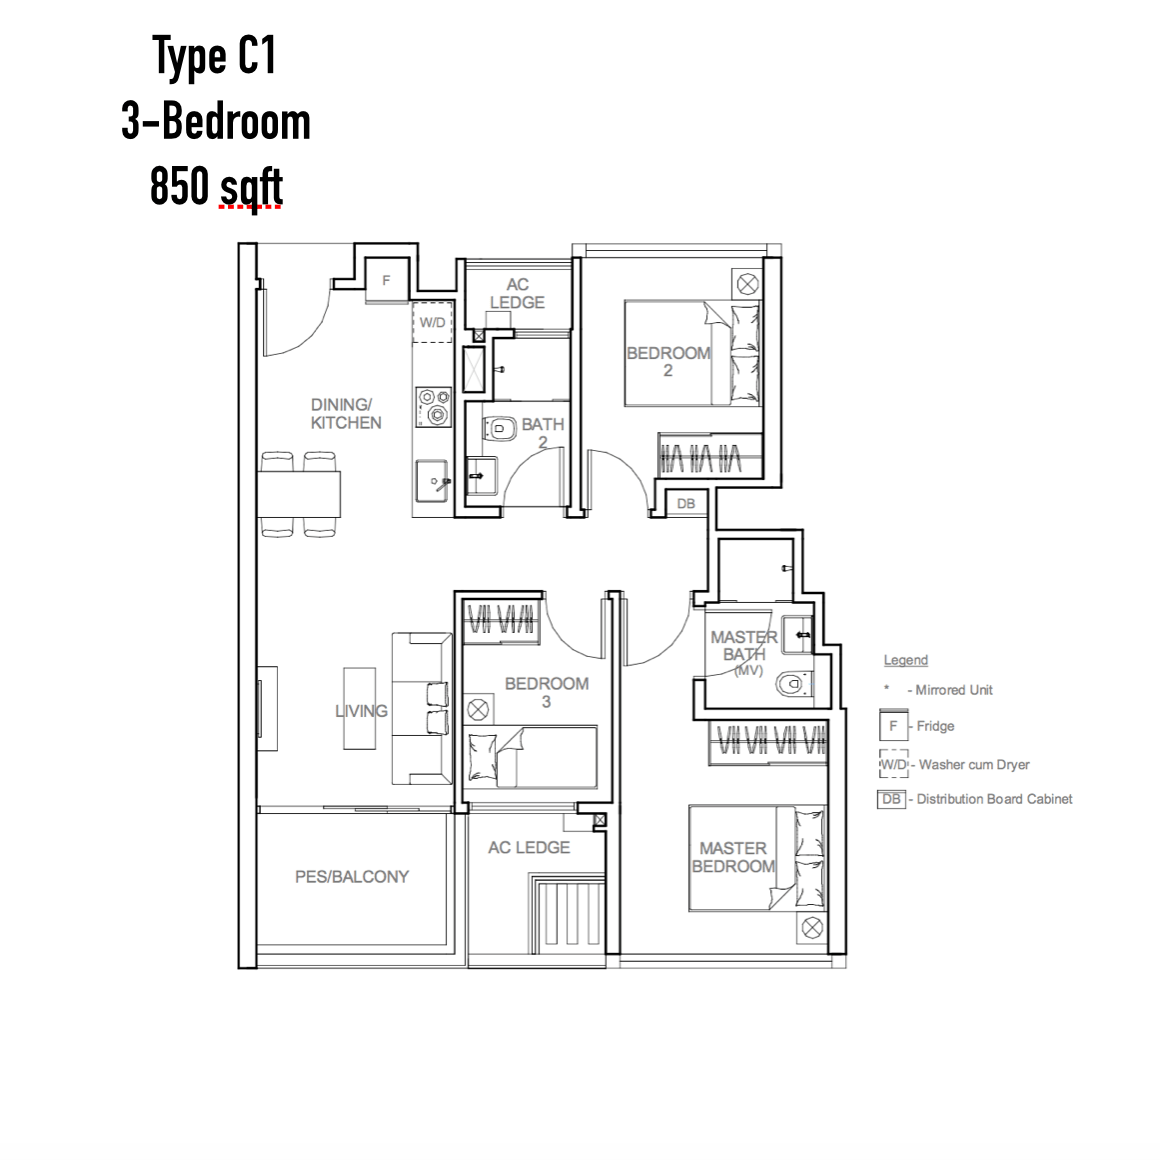 Wiring Diagram 3 Bedroom Flat Get Free Image About Wiring